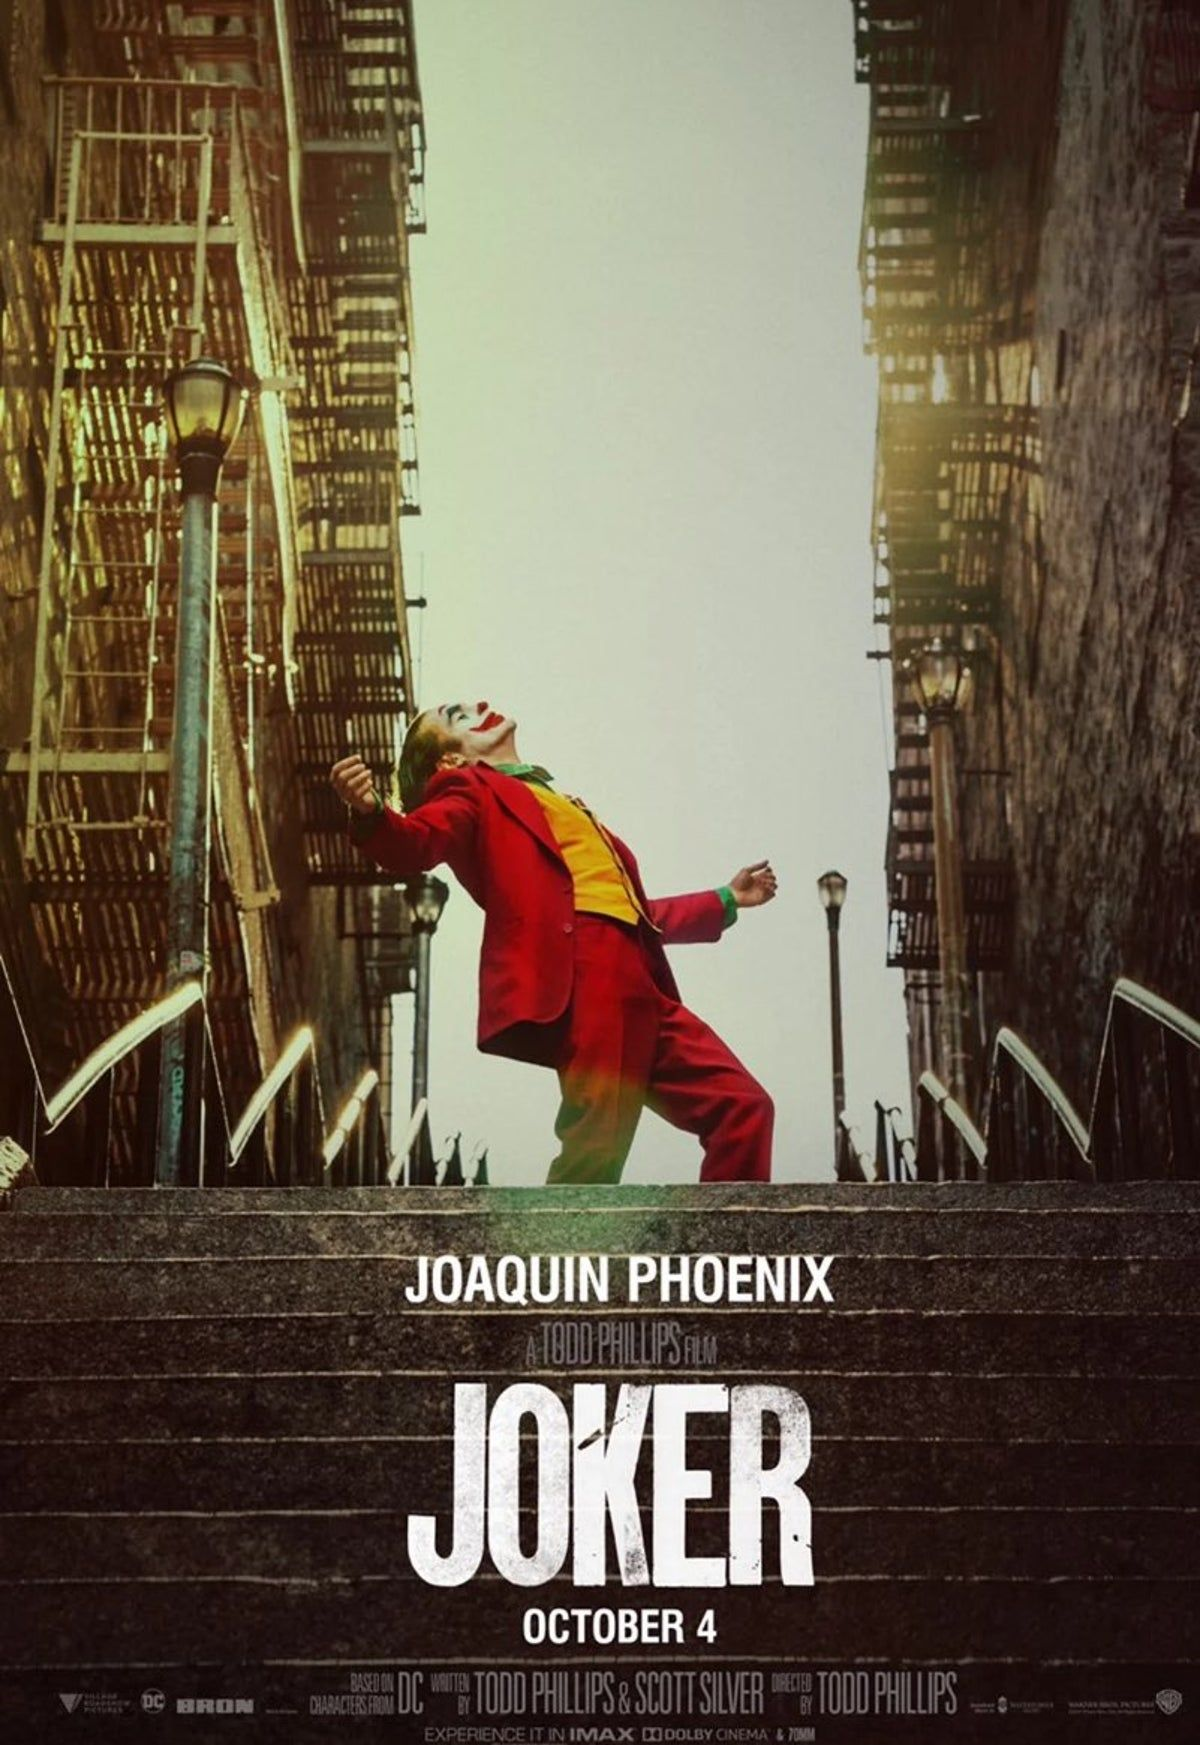 Joker Movie Poster In 2020 Joker Film Joker Full Movie Joker